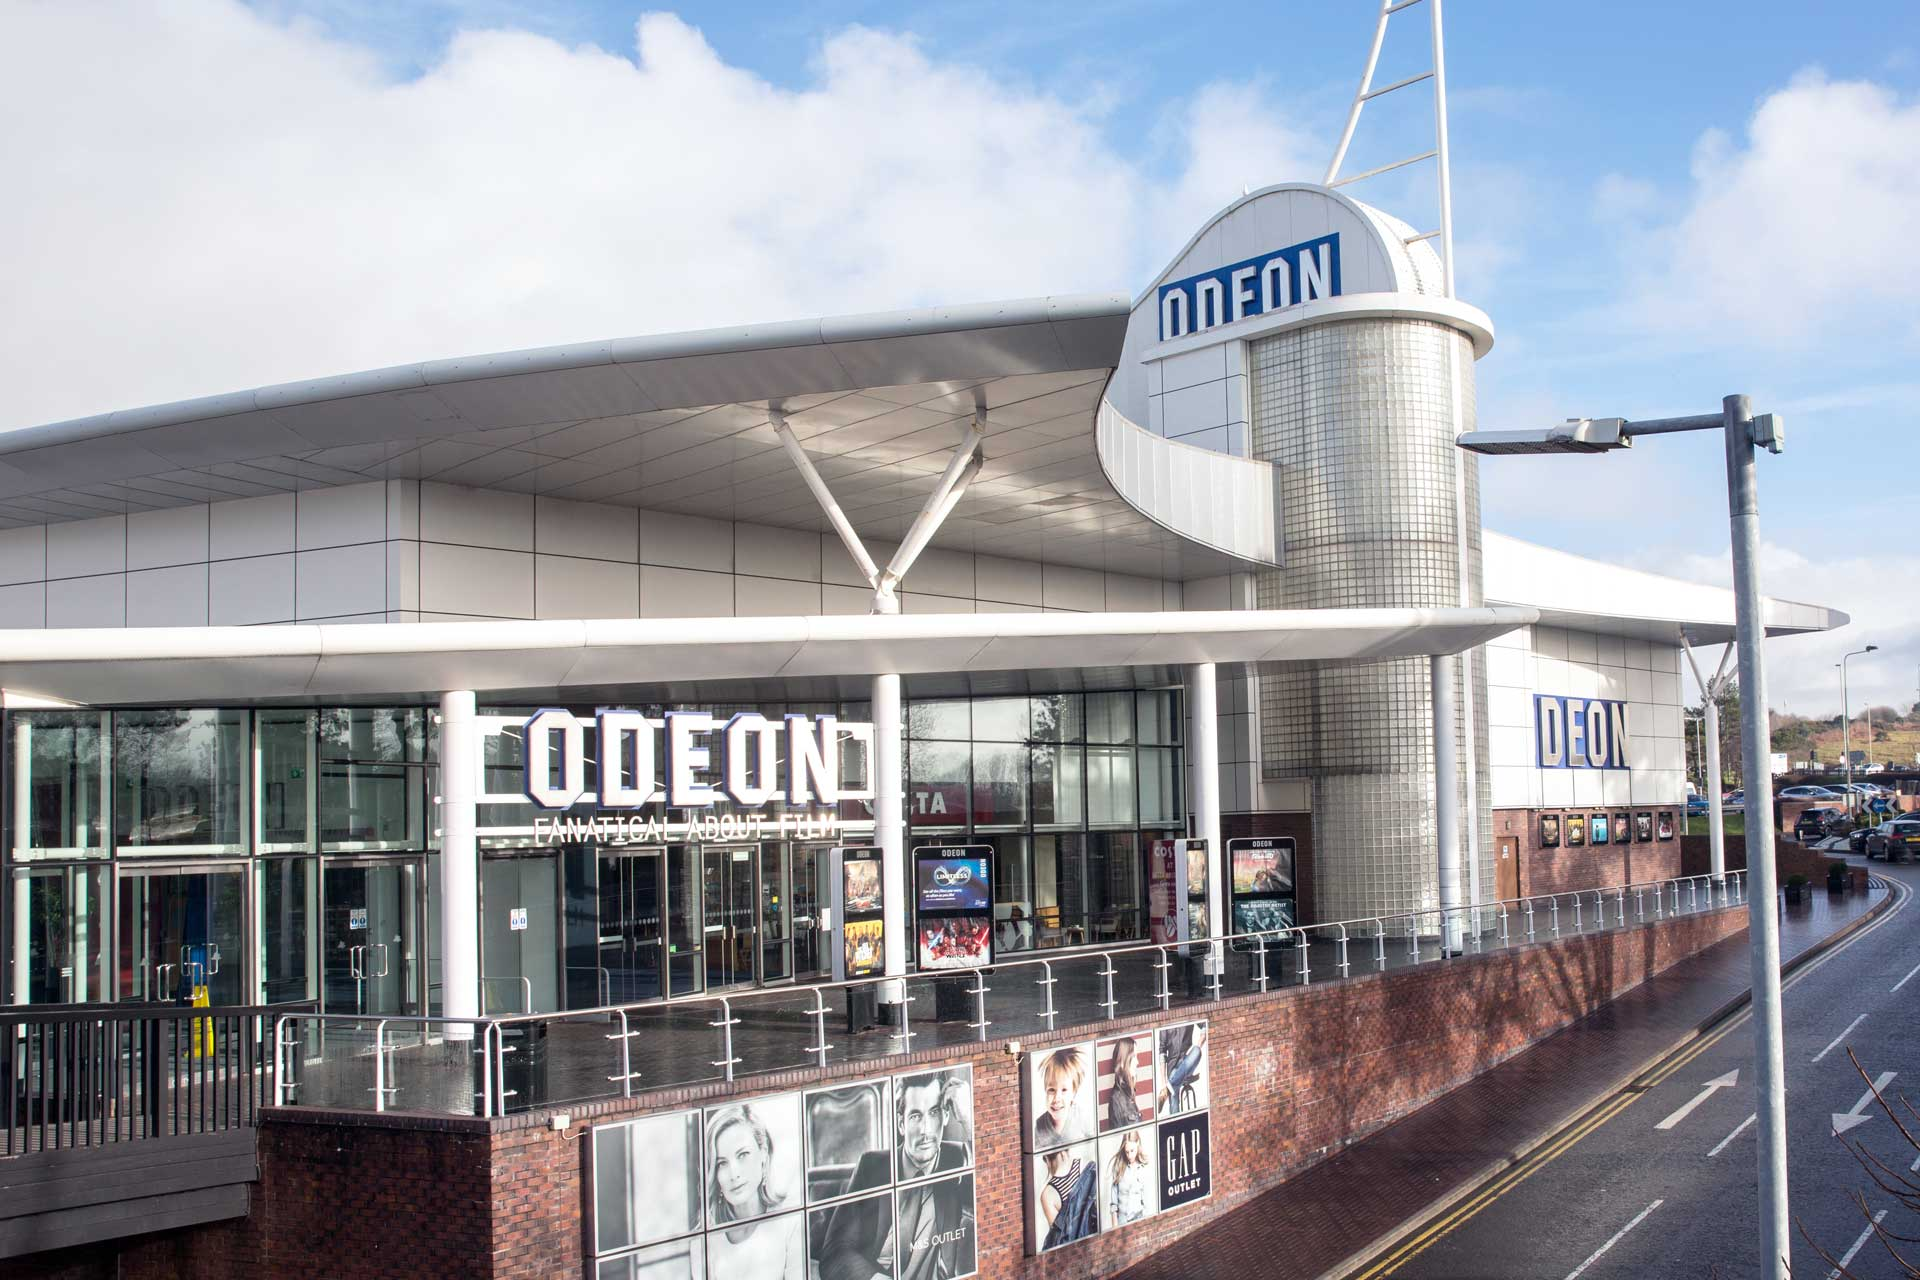 The Odeon Cinema at Bridgend Designer Outlet